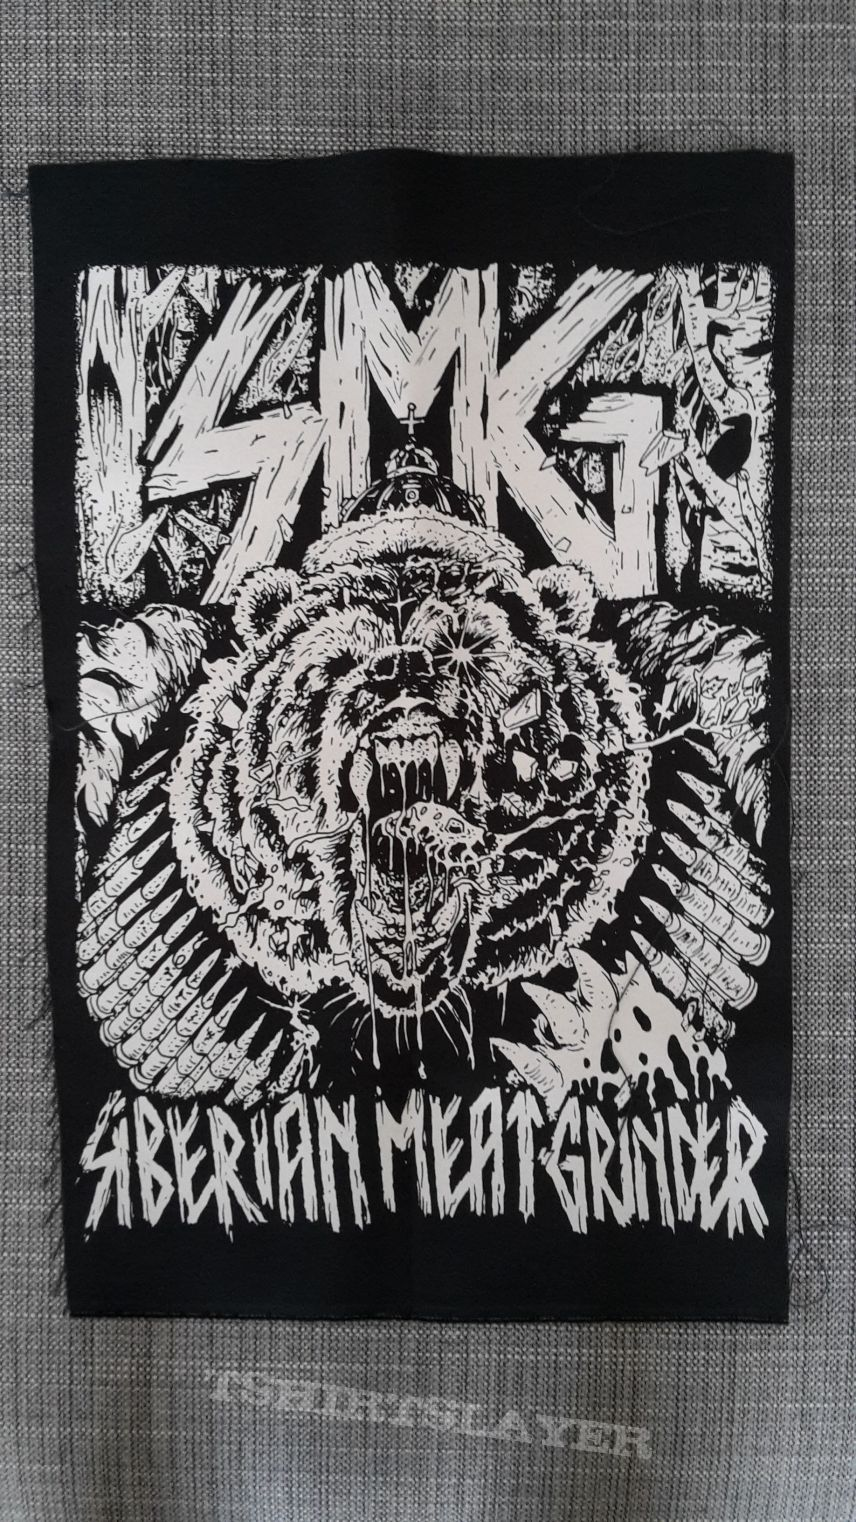 Siberian Meat Grinder Backpatch